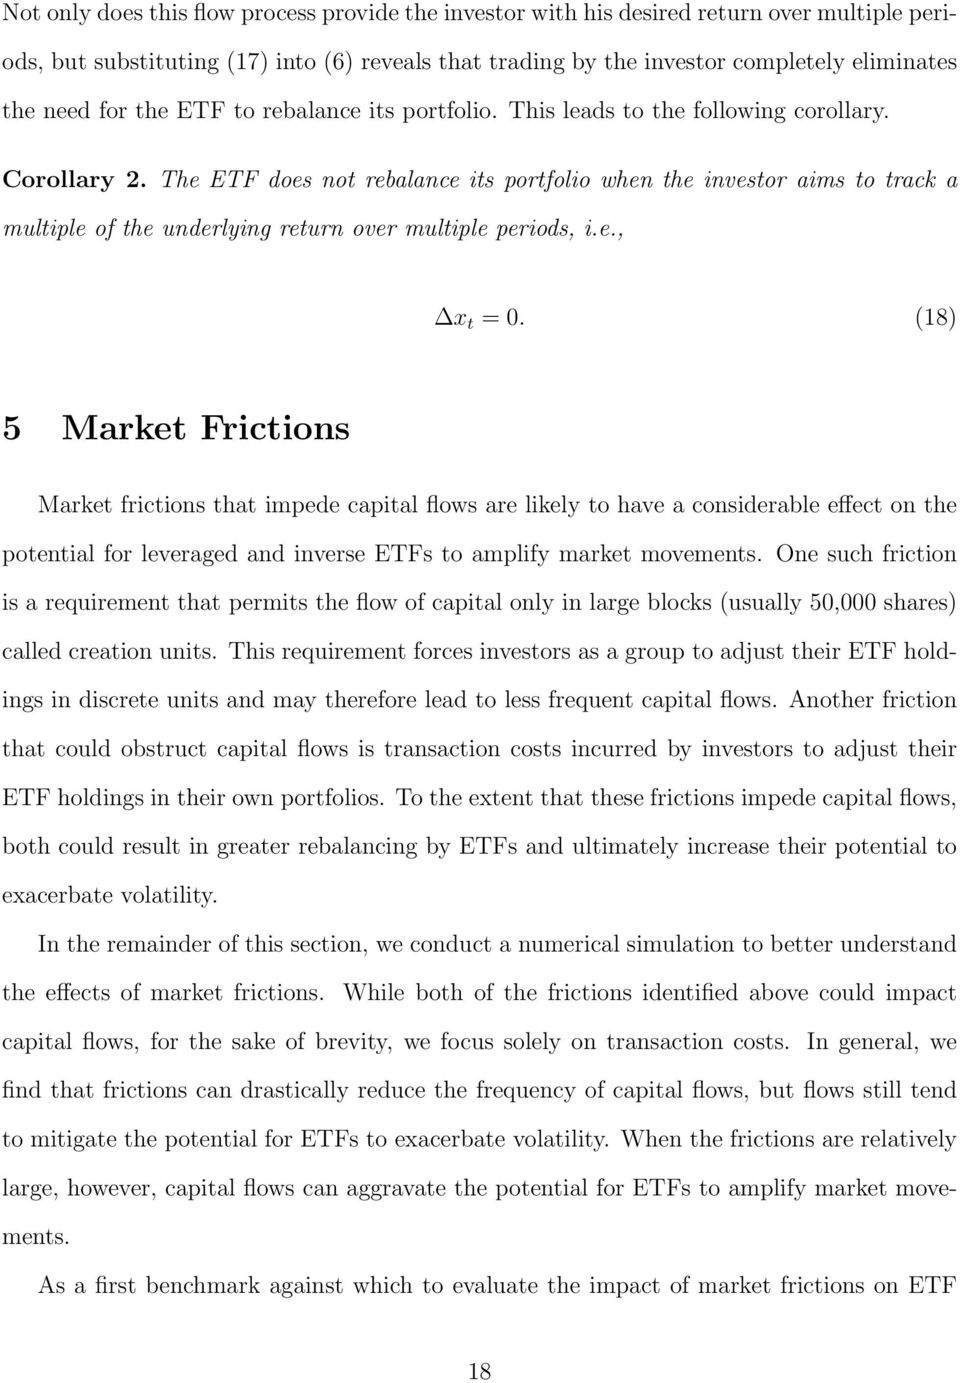 The ETF does not rebalance its portfolio when the investor aims to track a multiple of the underlying return over multiple periods, i.e., x t = 0.